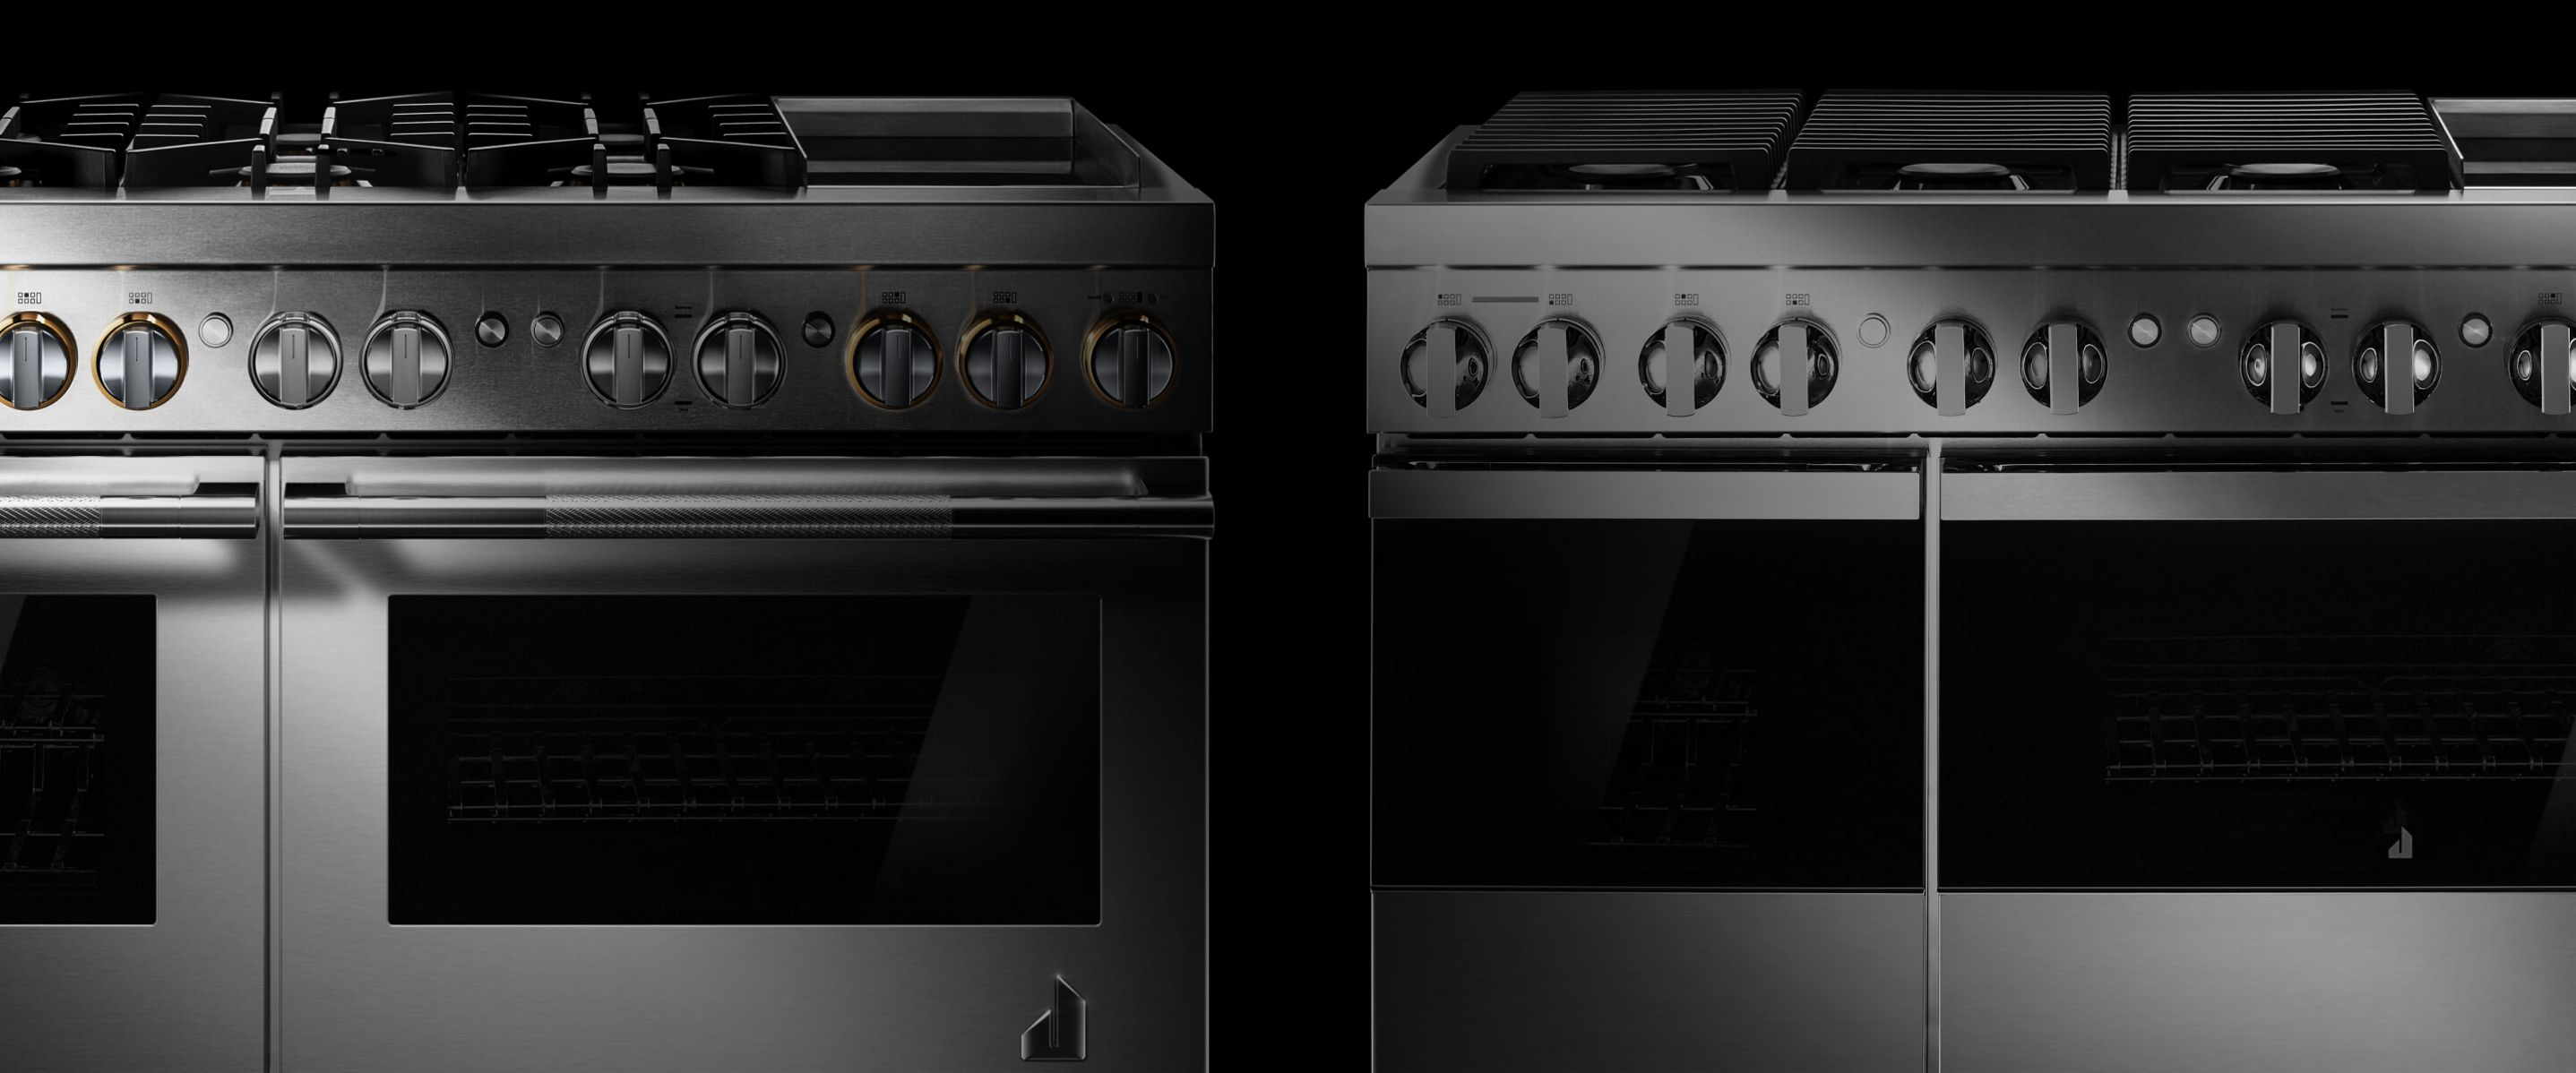 The top of a NOIR™ professional-style range, featuring 6 burners and a chrome-infused griddle.